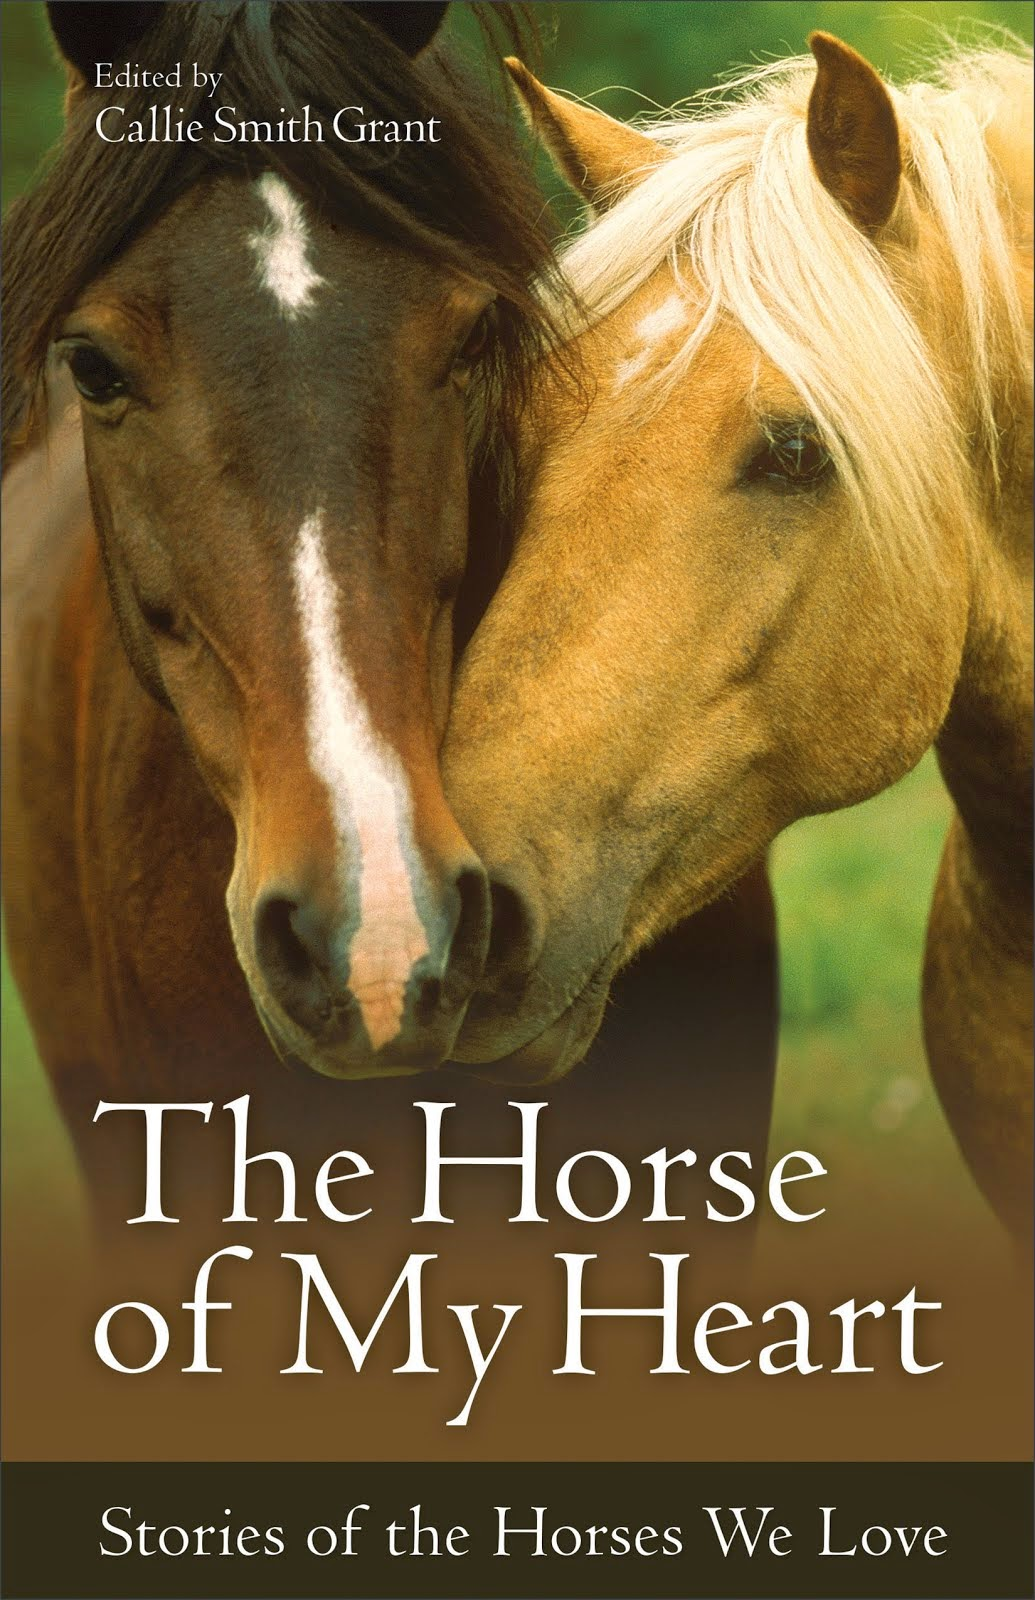 Horse of My Heart anthology containing my story: Soul Therapy